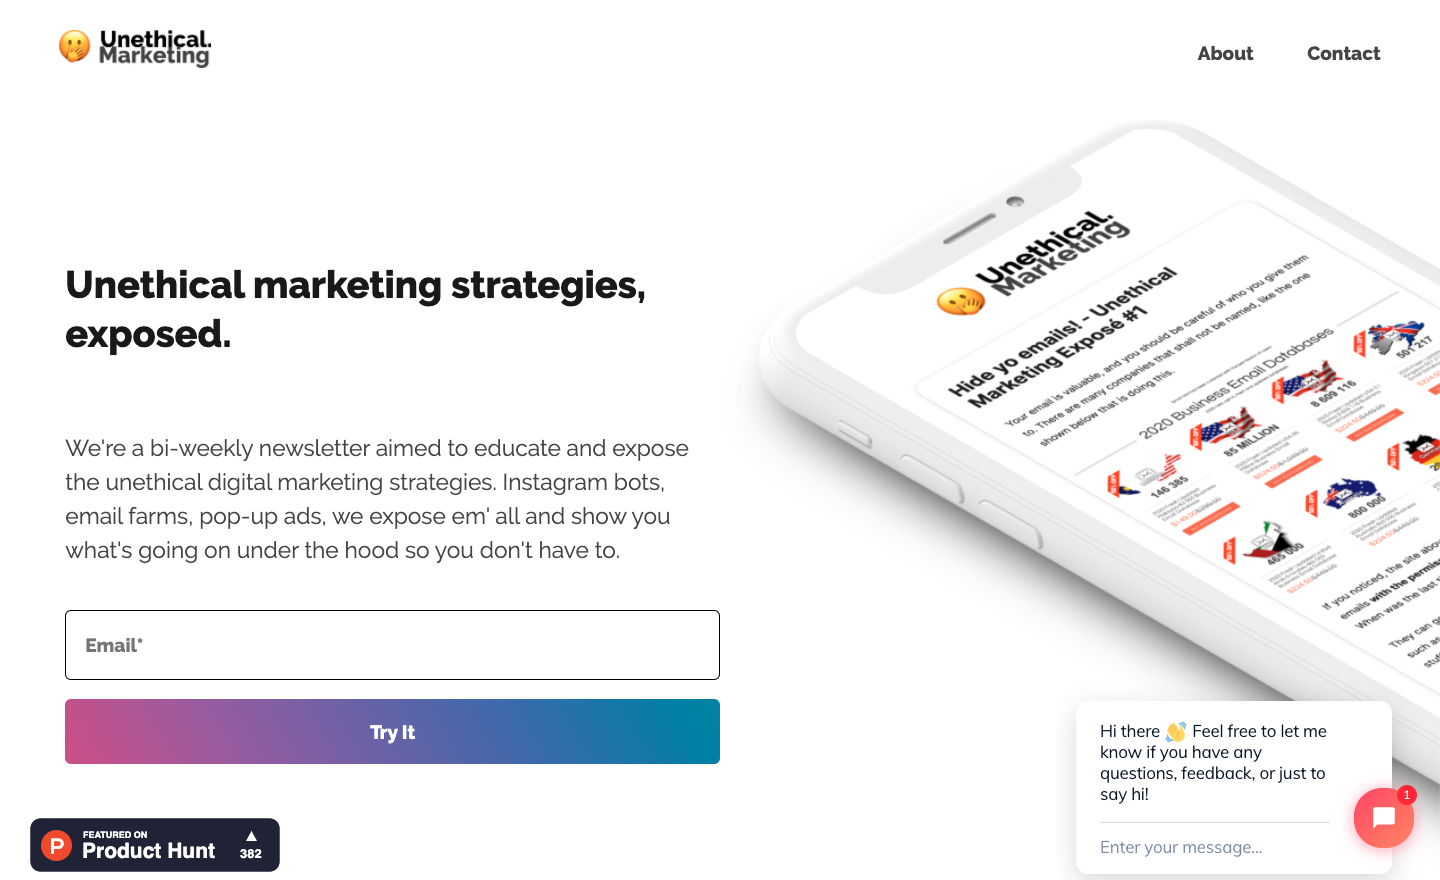 Unethical Marketing homepage